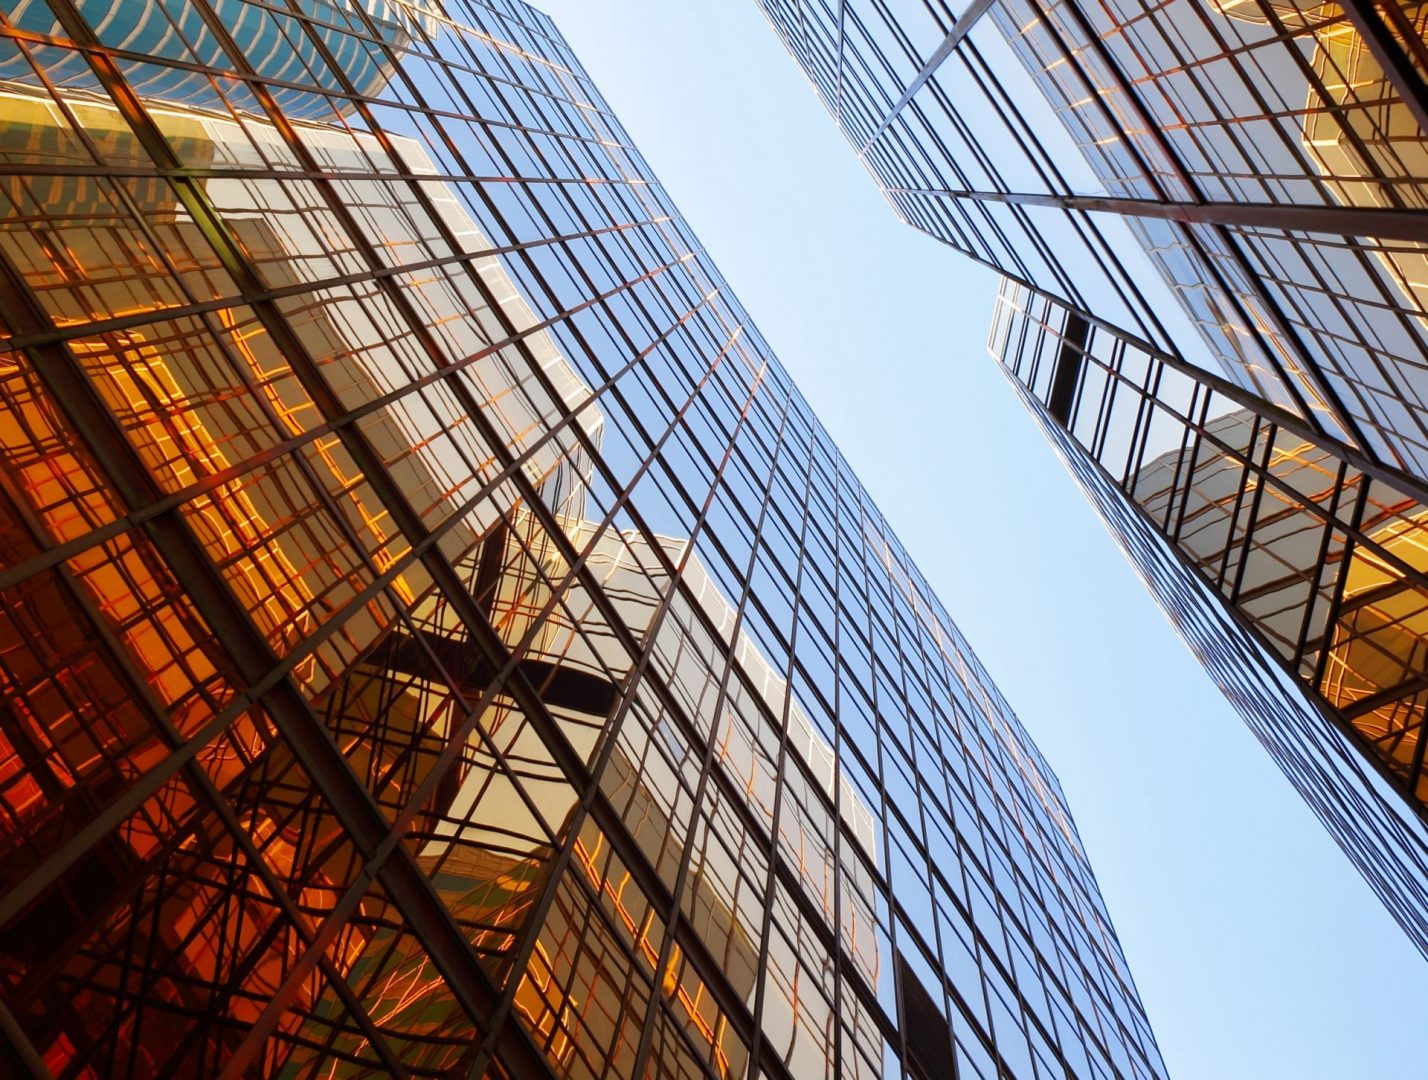 PV Curate to Accumulate - modern glass buildings